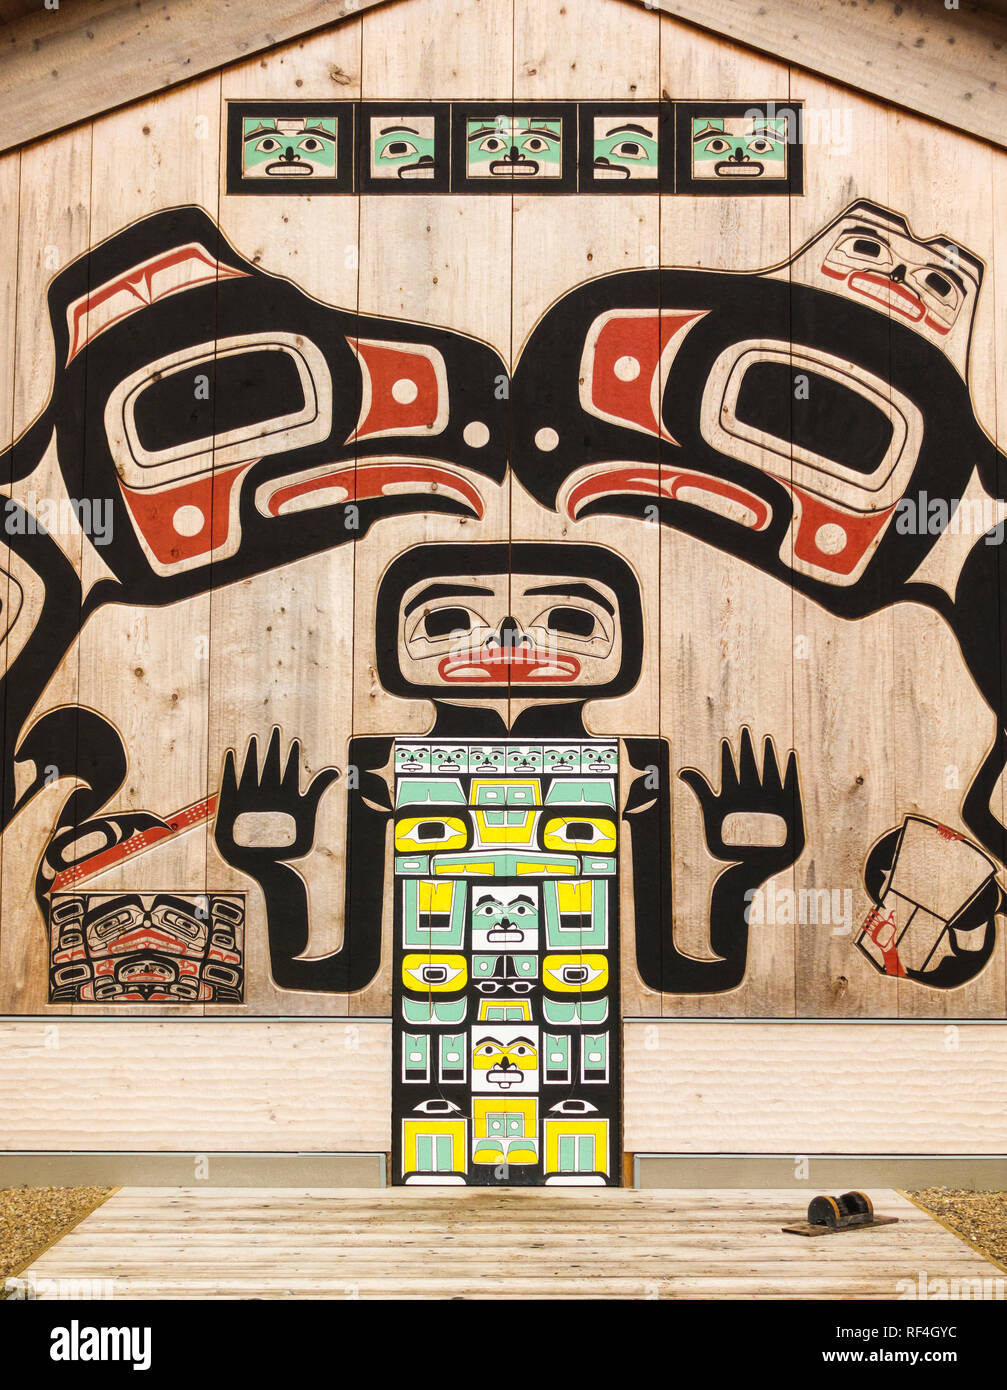 Carved and painted cedar wood panels decorate the Tlingit ... on windows metafile clip art house, native american french, native design house, native american adventure, native american sci-fi, native american cult, native american international, native american shiloh, native american serial killers, native american lol, native american satire, native american home, native american norwegian, native american noir, native american arabic, native american dutch, native american italian, native american european, native american cops,